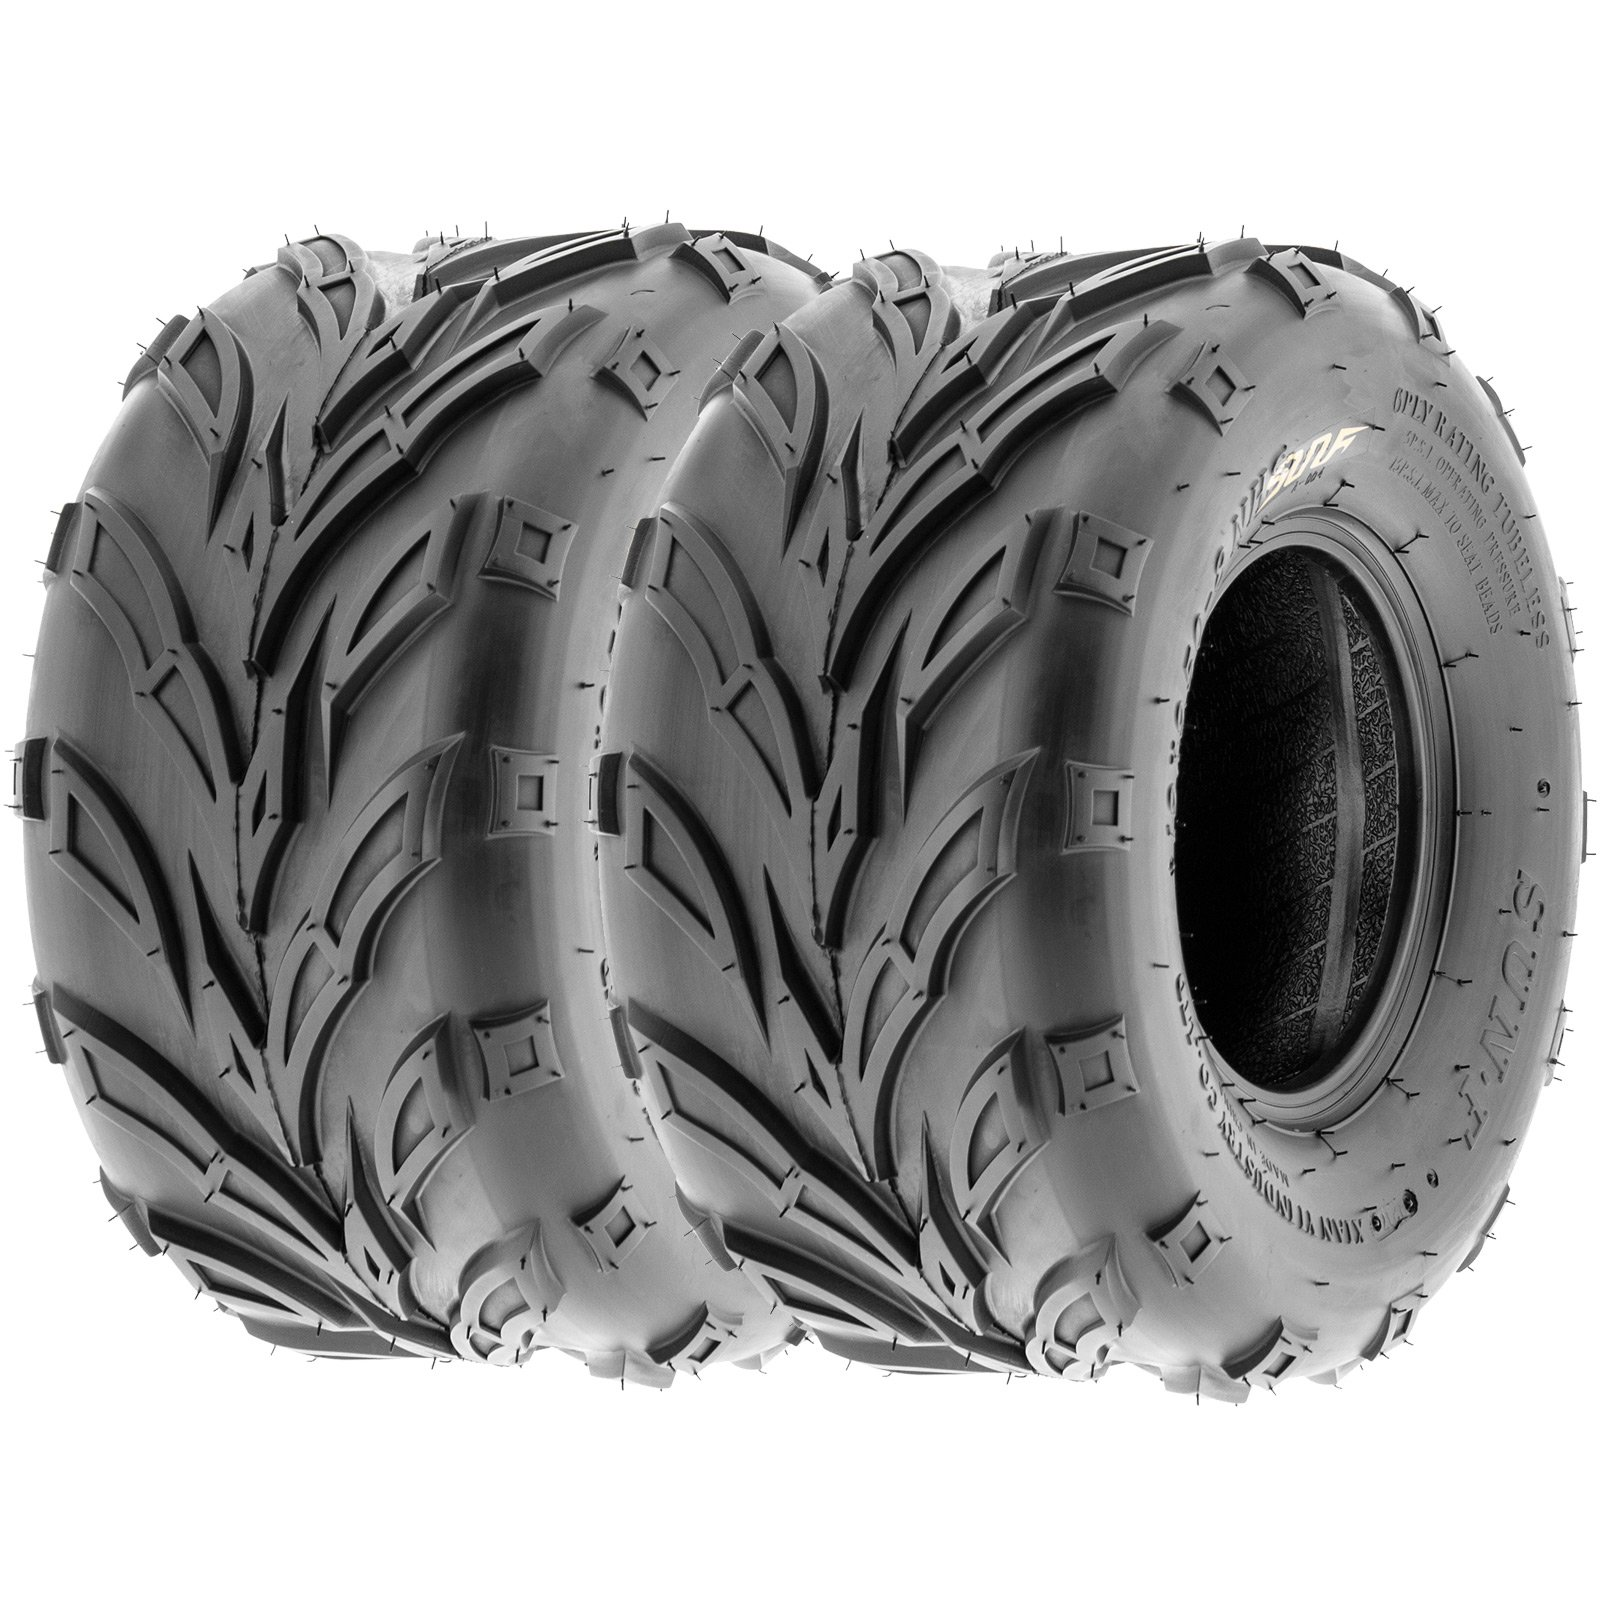 Pair of 2 SunF A004 ATV UTV 19x9.5-8 AT off-road Tires, 6 PR, Tubeless